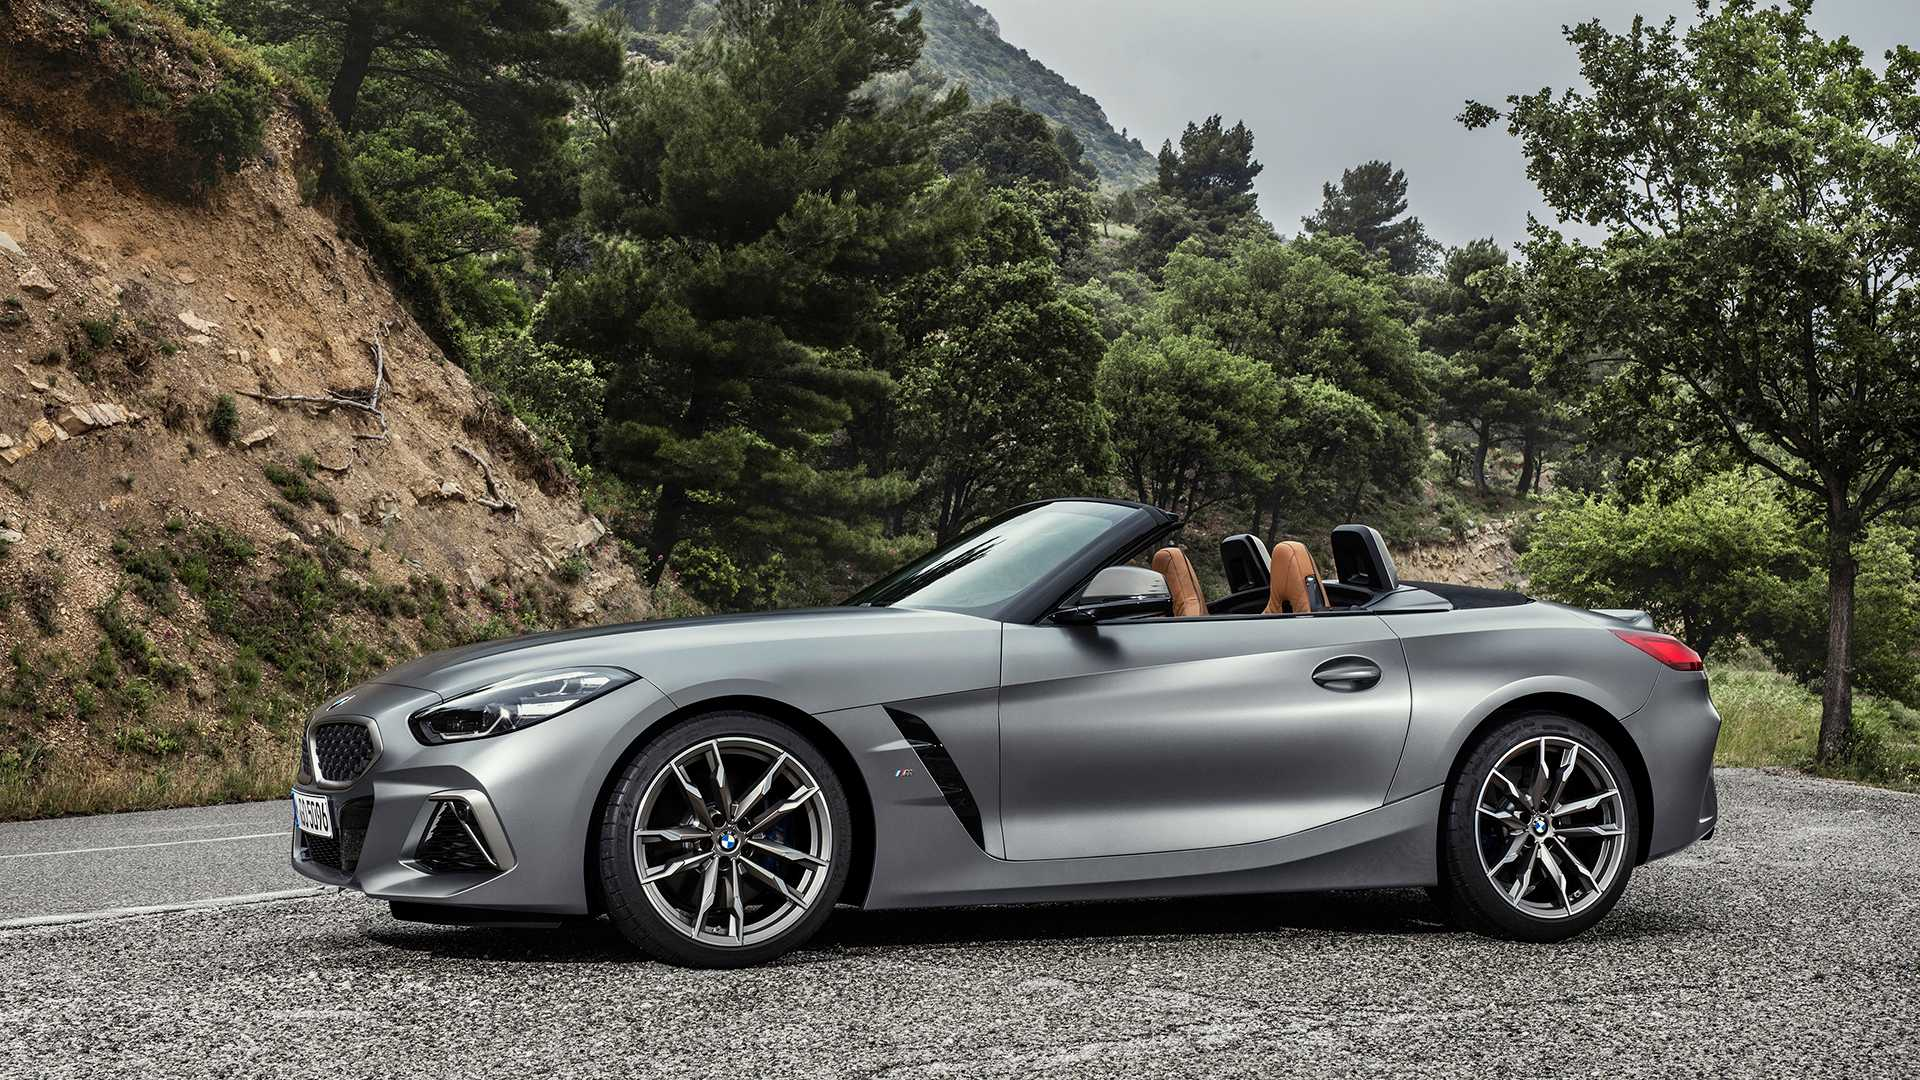 New Bmw Z4 Pricing Allegedly Leaks Online Goes Past 65k